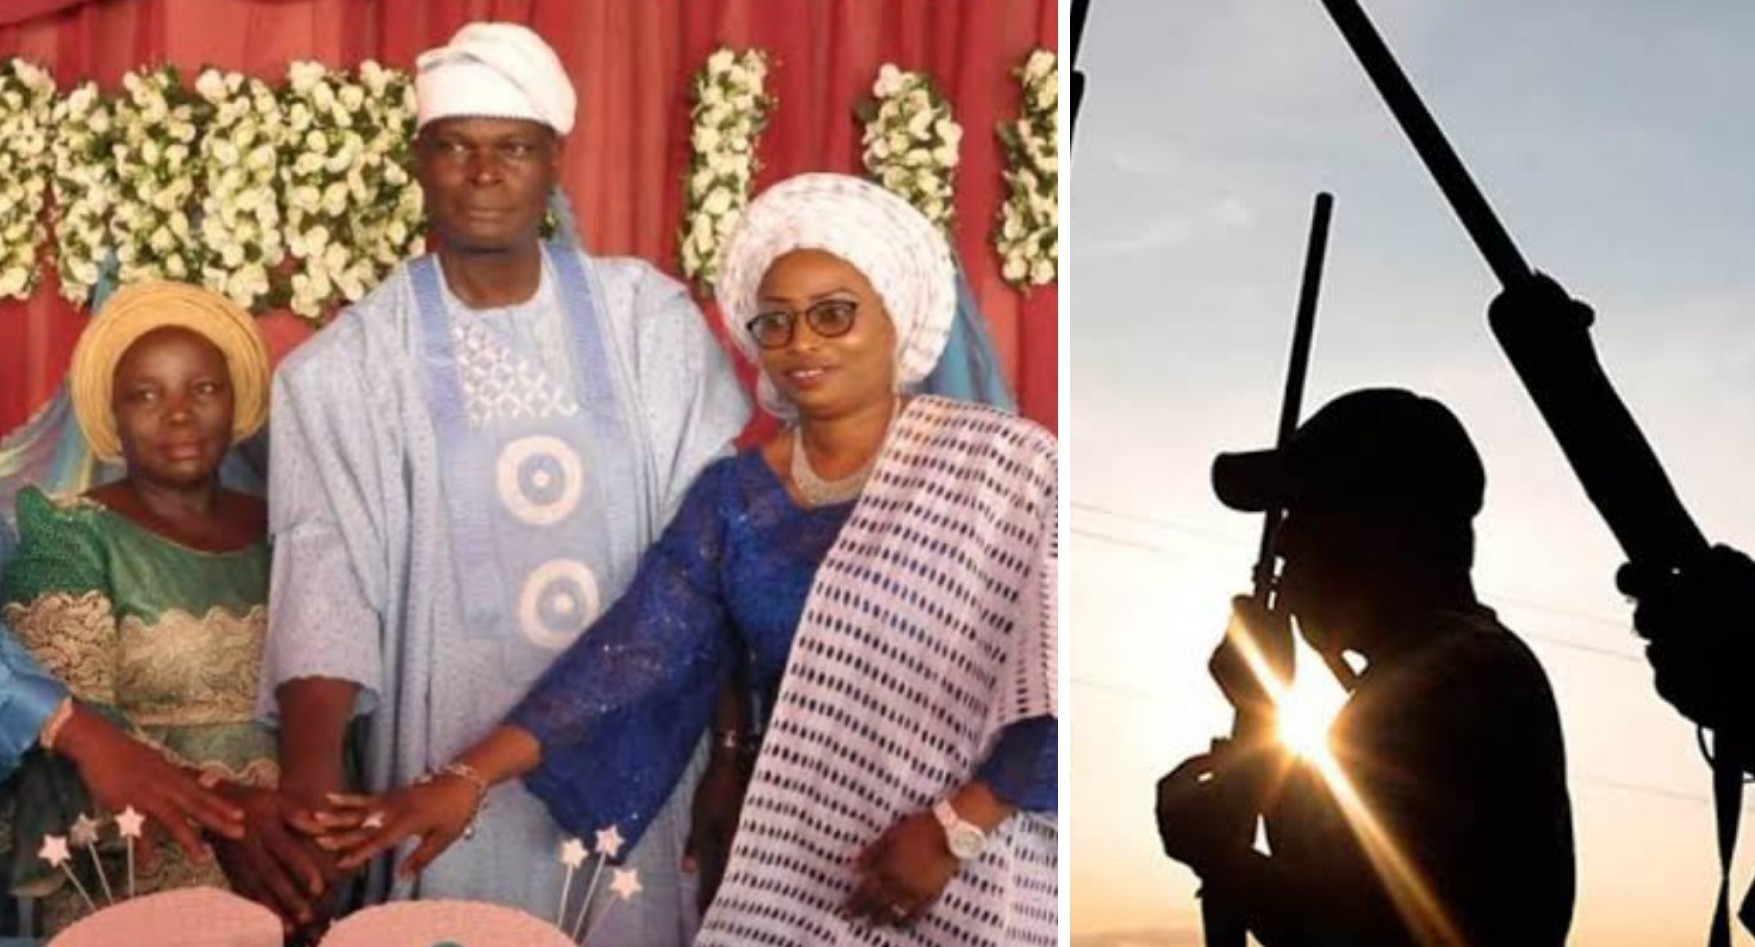 Olugbenga's wife kidnapped in the state